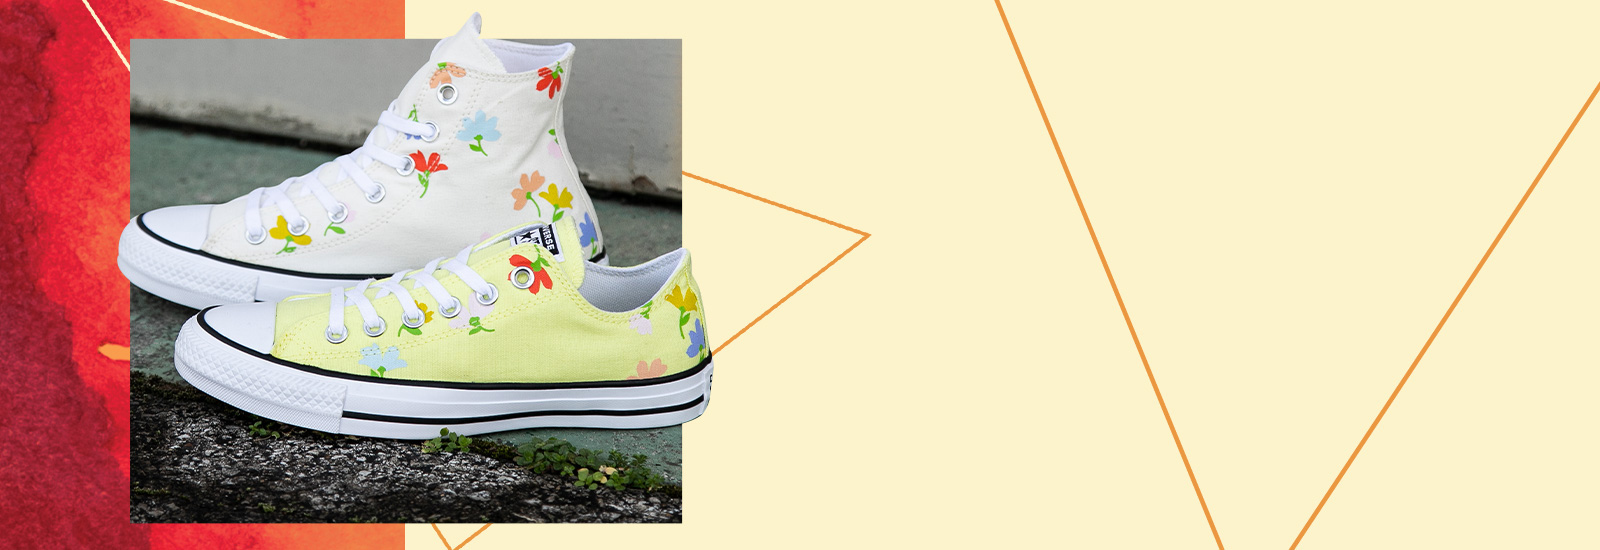 Prints and Graphics - Blooming Prints